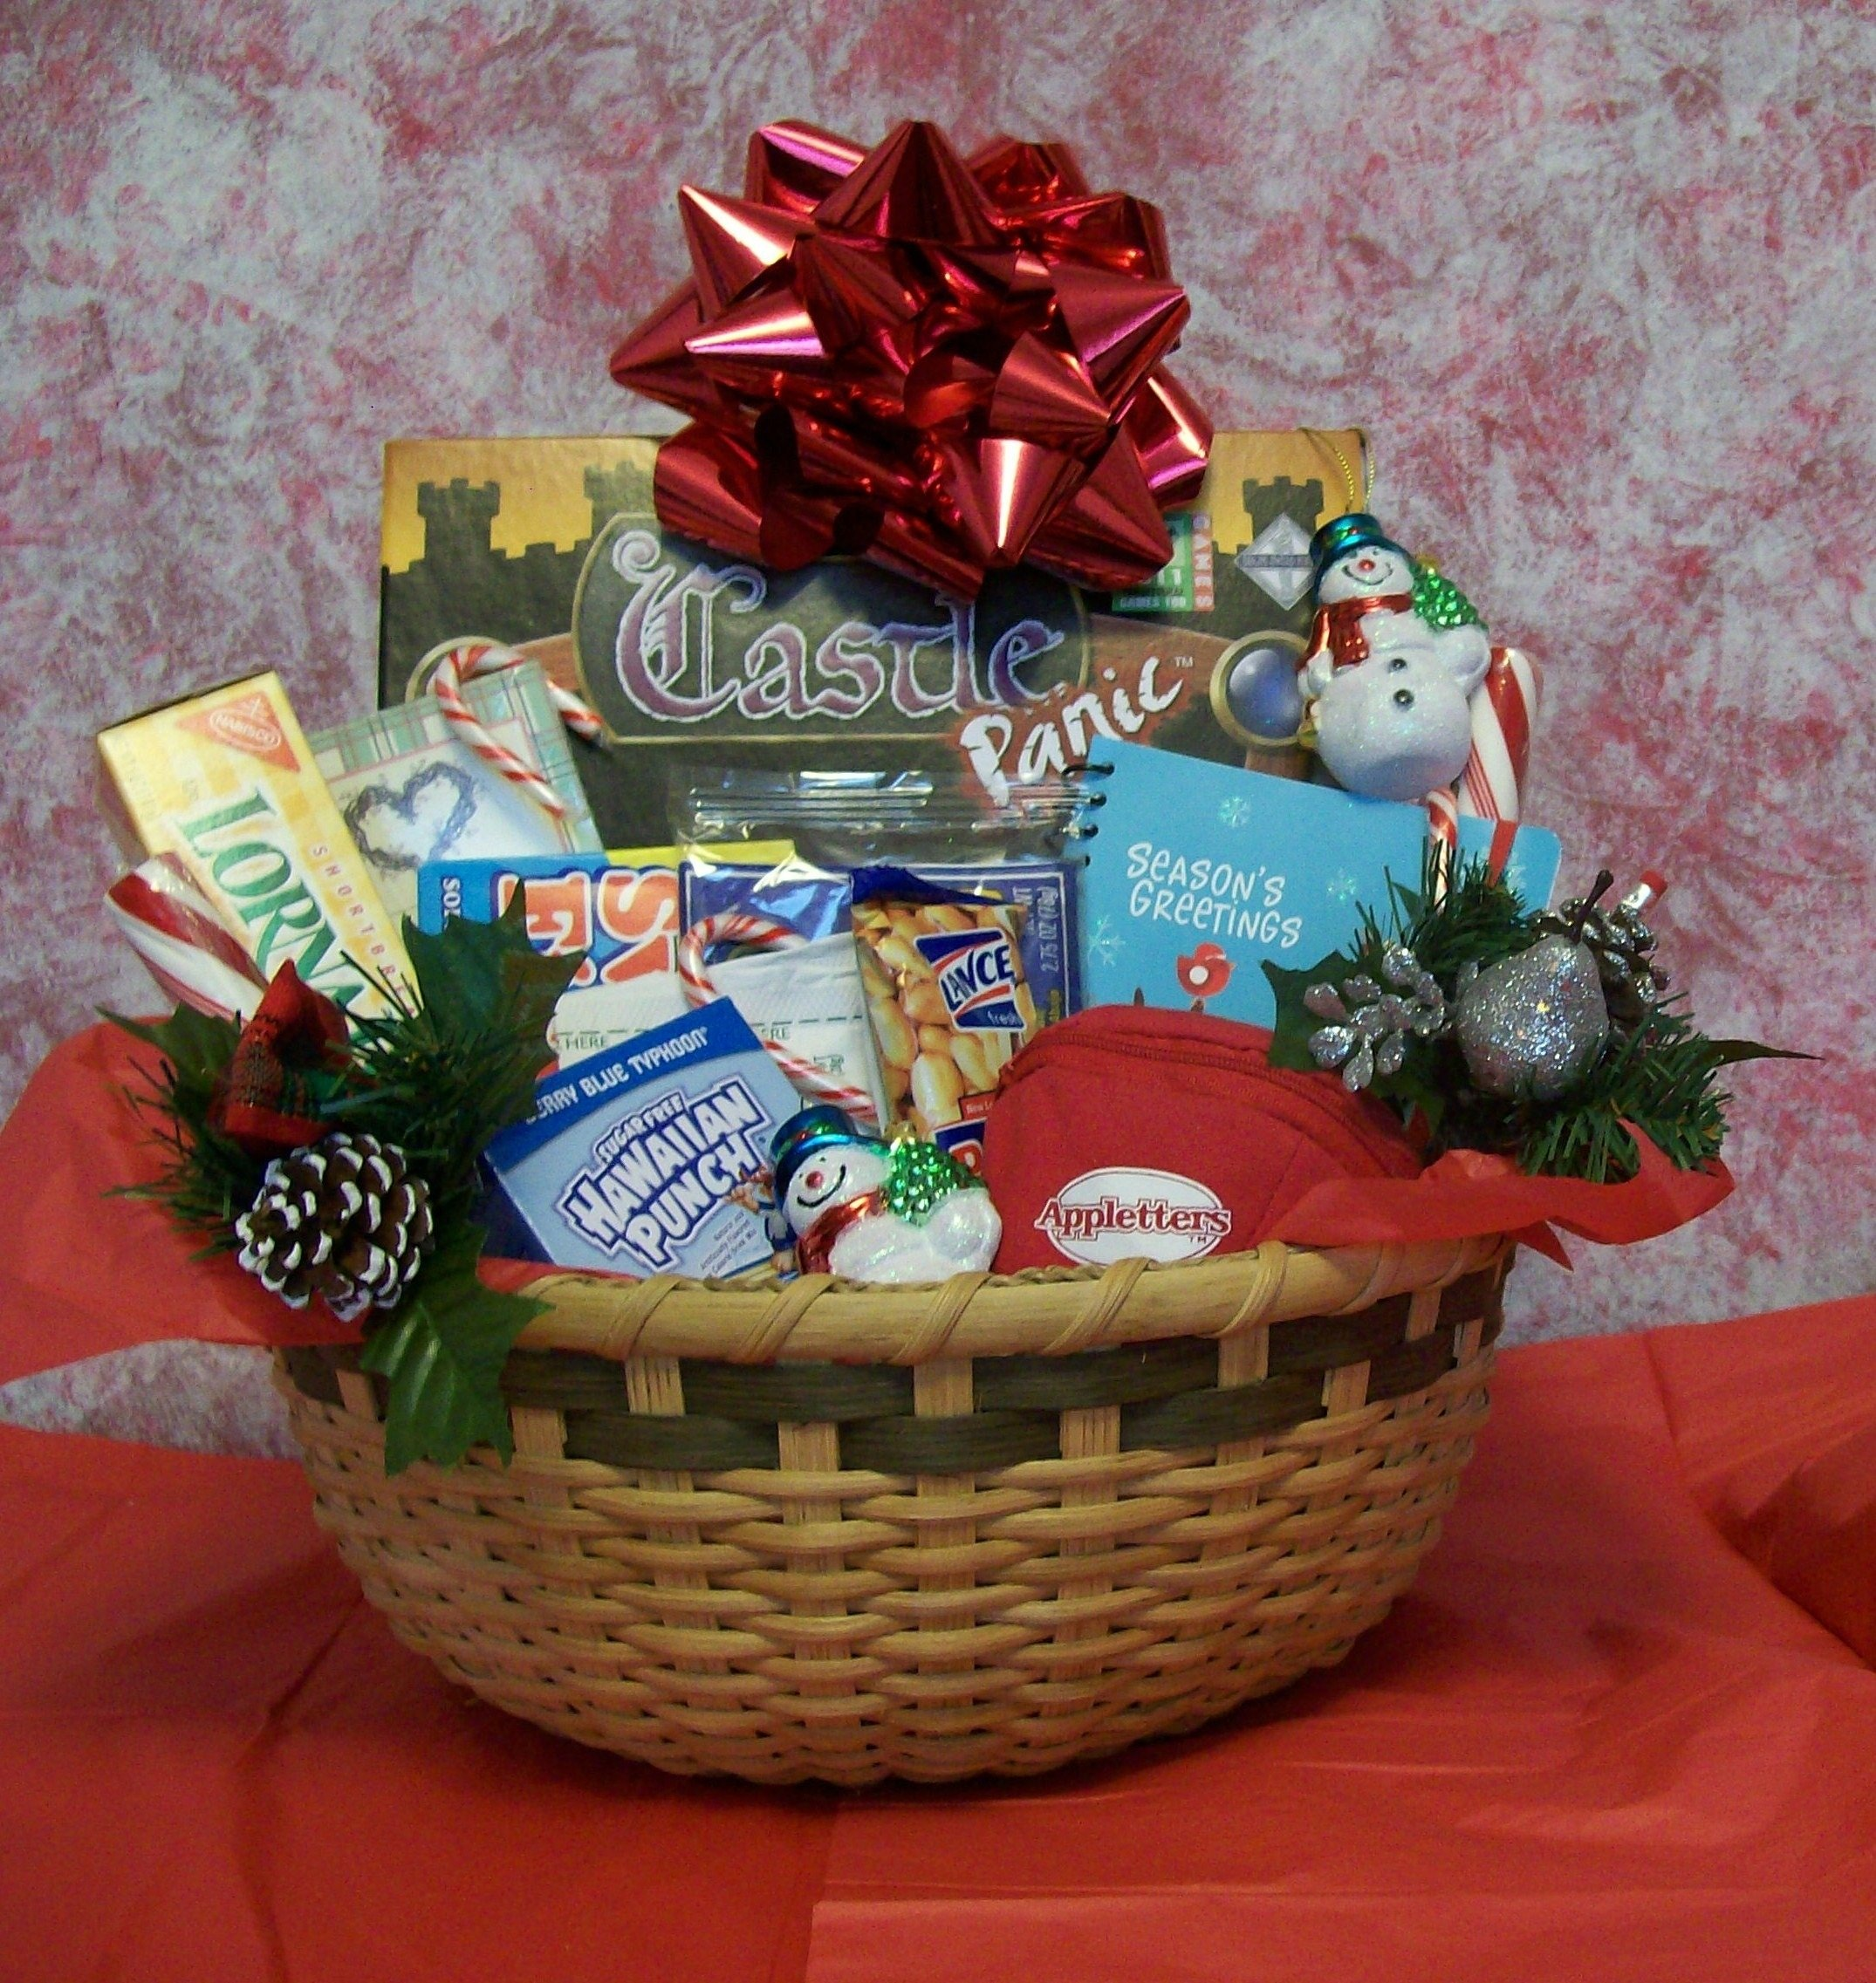 10 Lovable Gift Ideas For Family Members 10 fast and cheap diy christmas gifts ideas for family members 2021